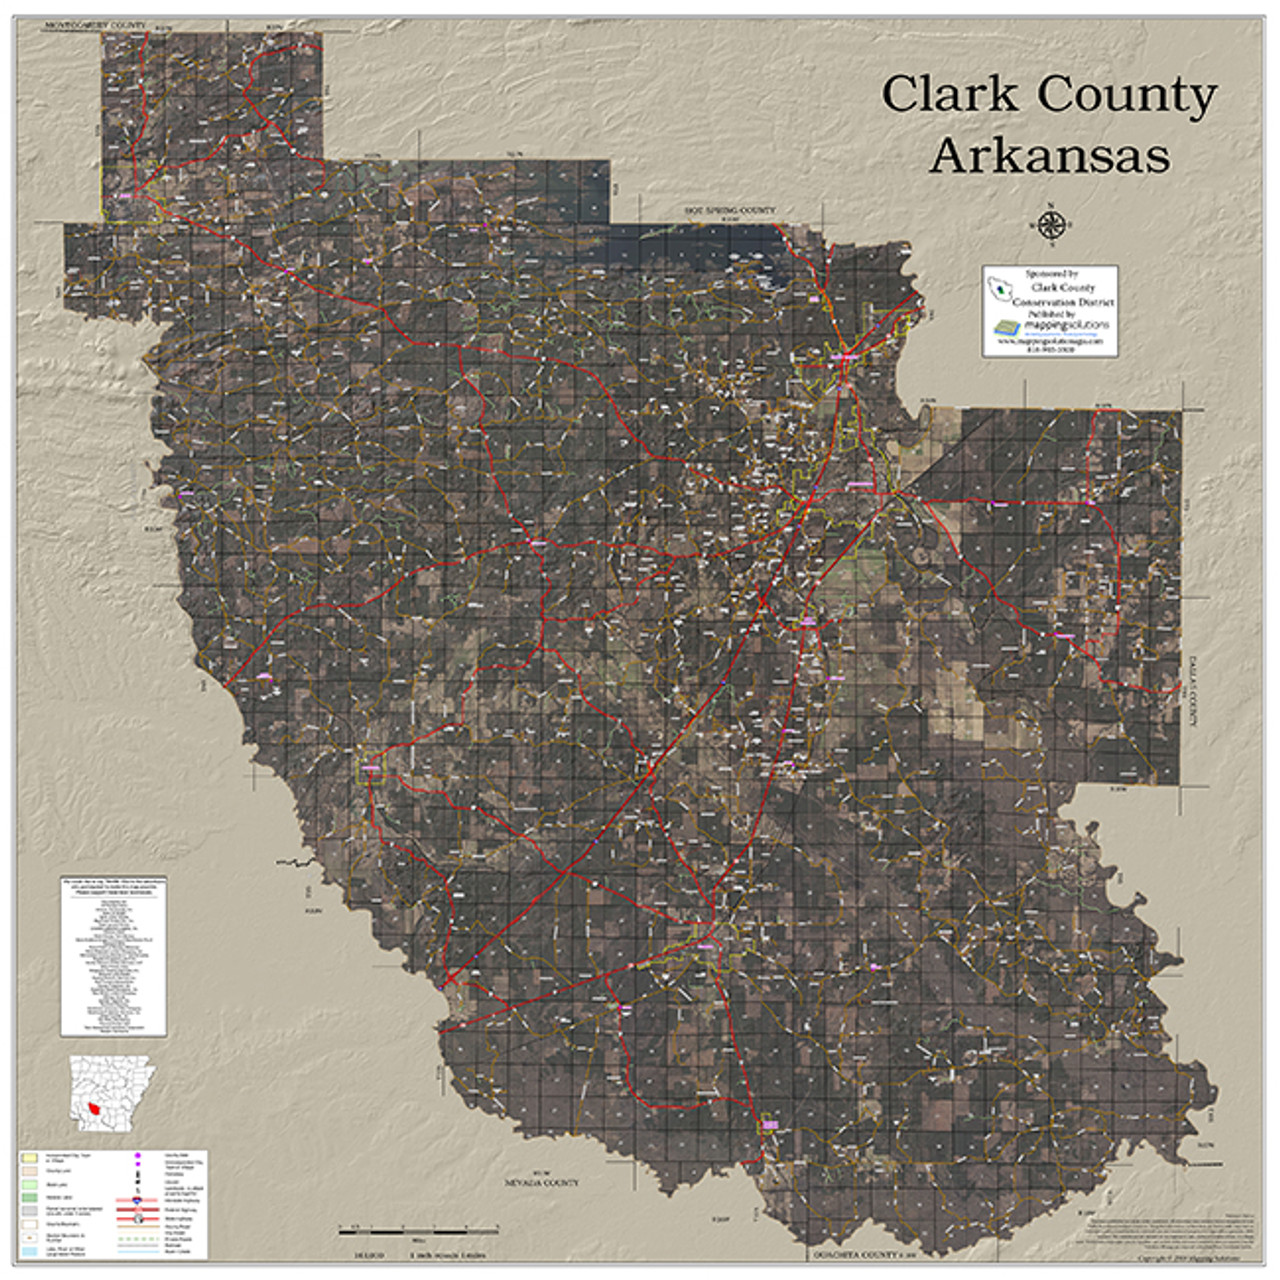 Clark County Arkansas 2018 Aerial Wall Map on las vegas valley map, william clark map, clark island map, clark school map, clark sd map, north las vegas map, clark colorado map, las vegas township map, nevada map, sandy valley map, ohio map,